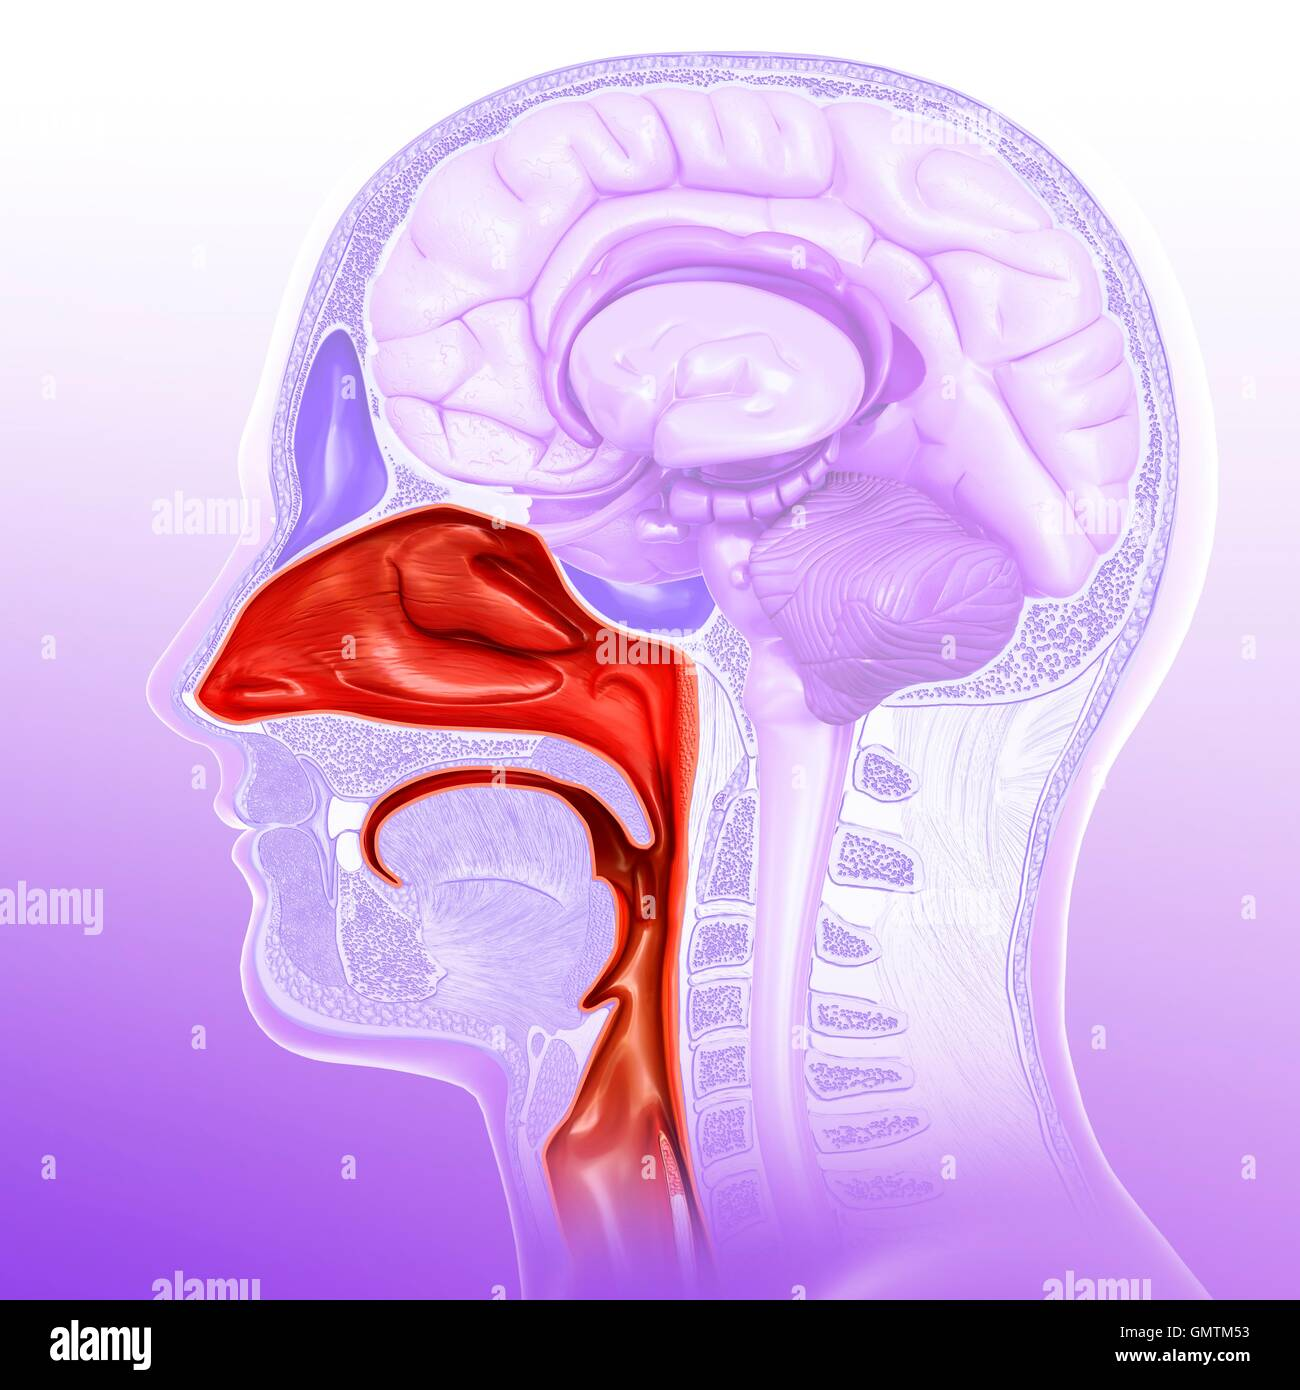 Human Nasal Cavity Stock Photos & Human Nasal Cavity Stock Images ...